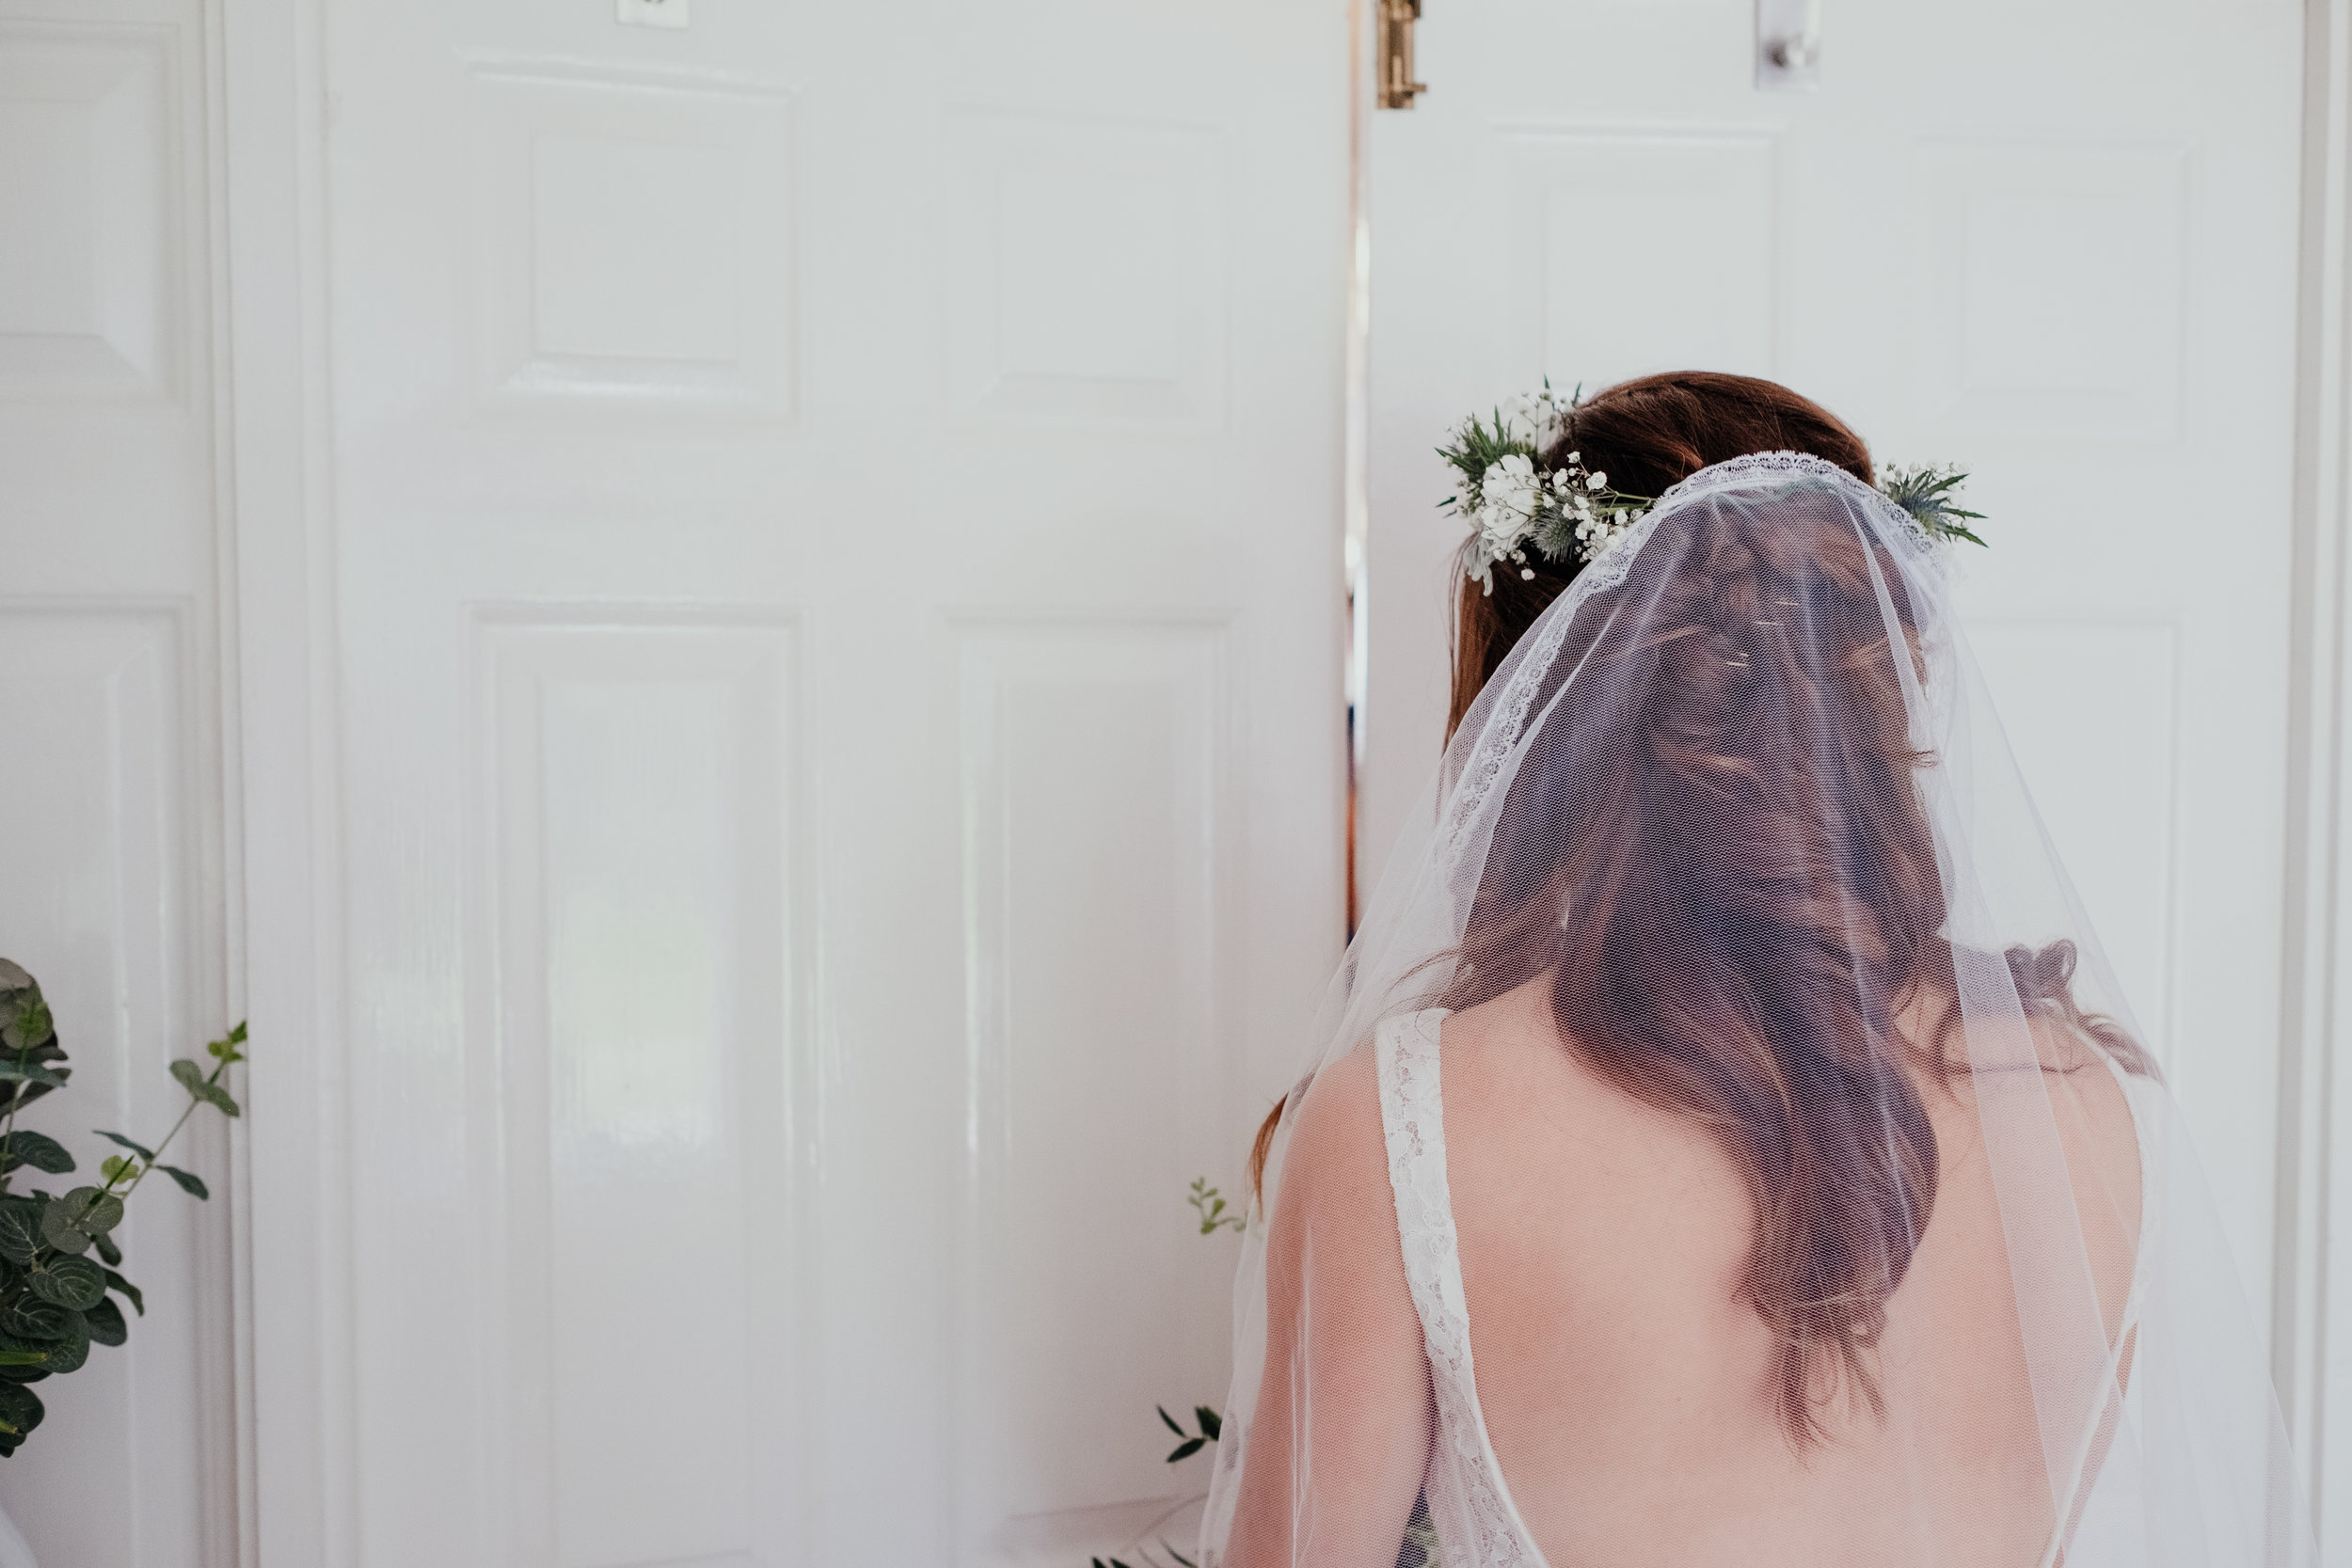 Bride pushes open door for big reveal to family